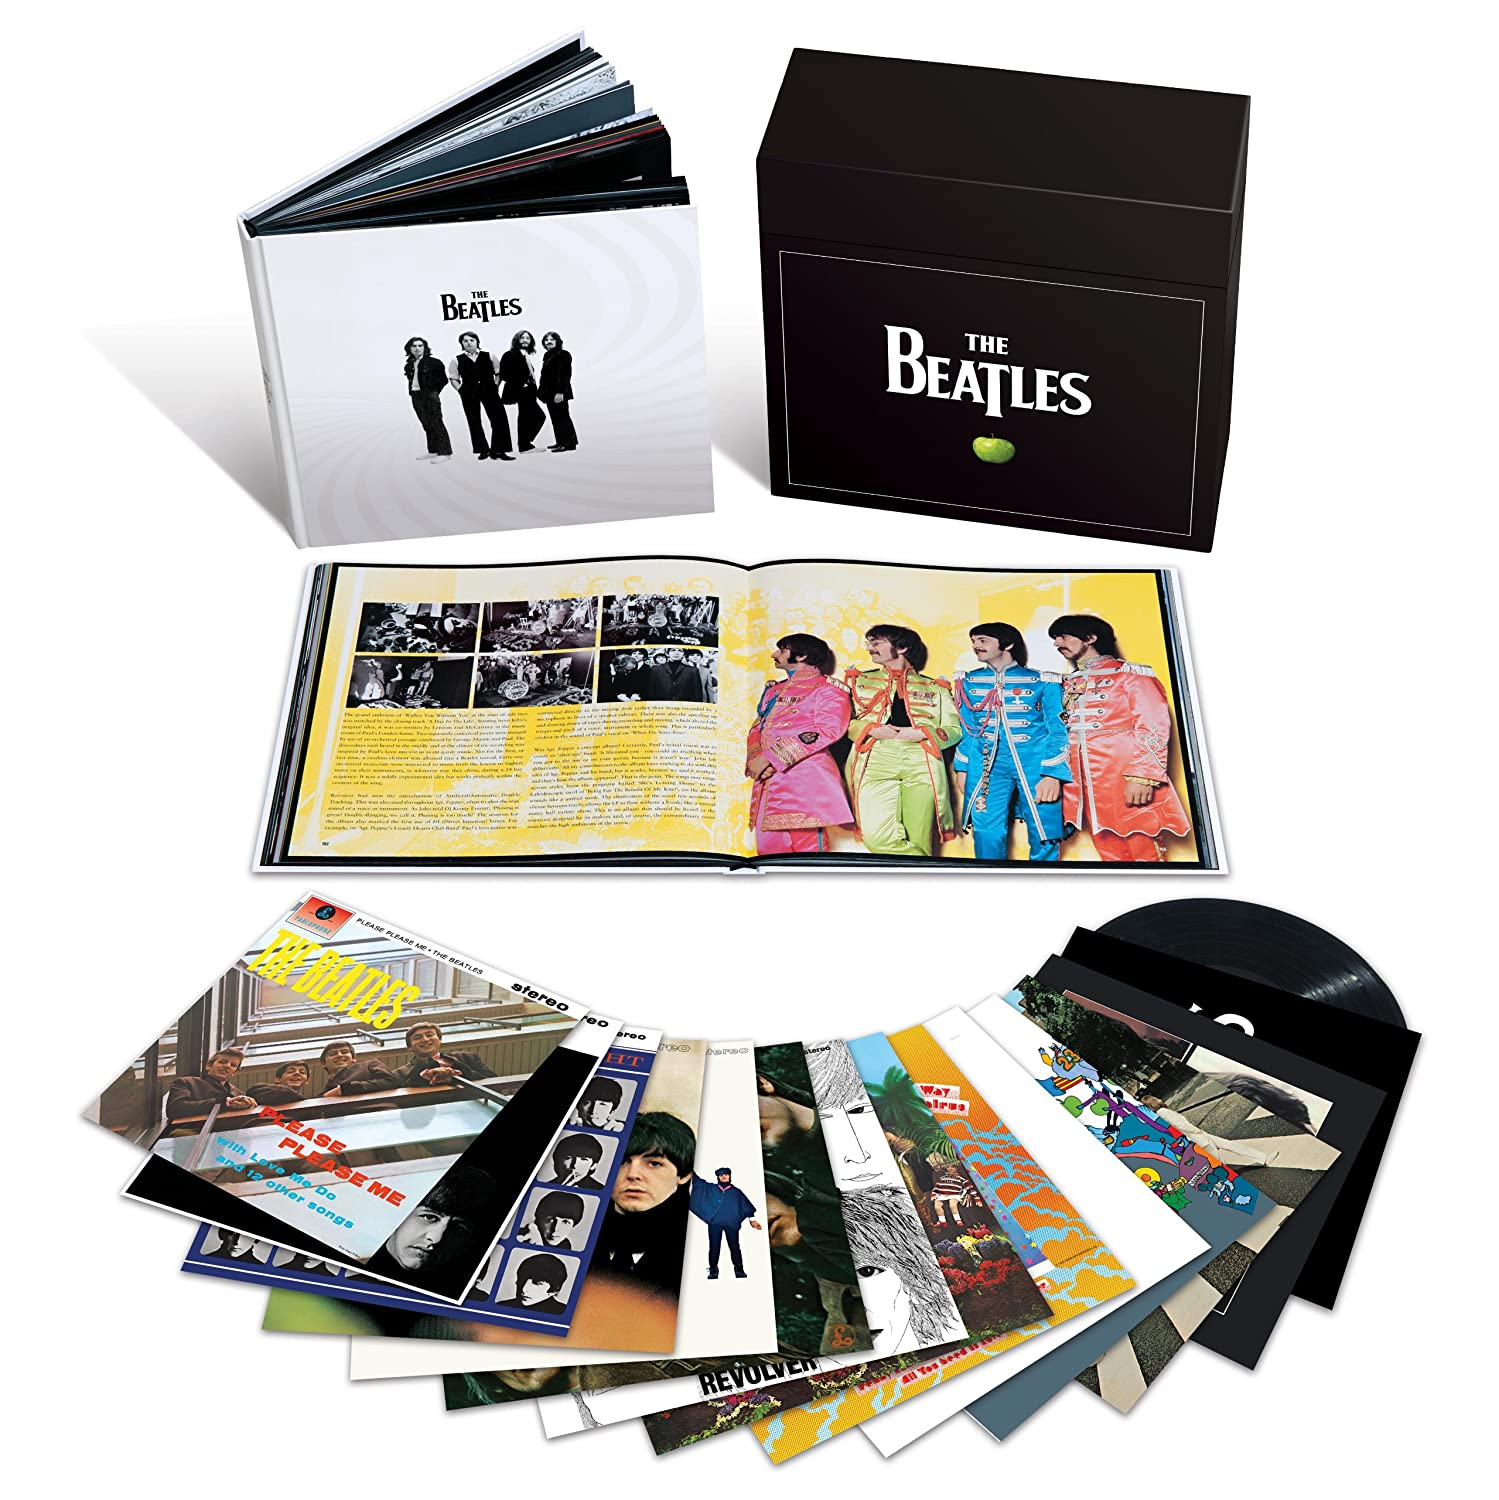 The Beatles Polska: The Beatles Box na winylu